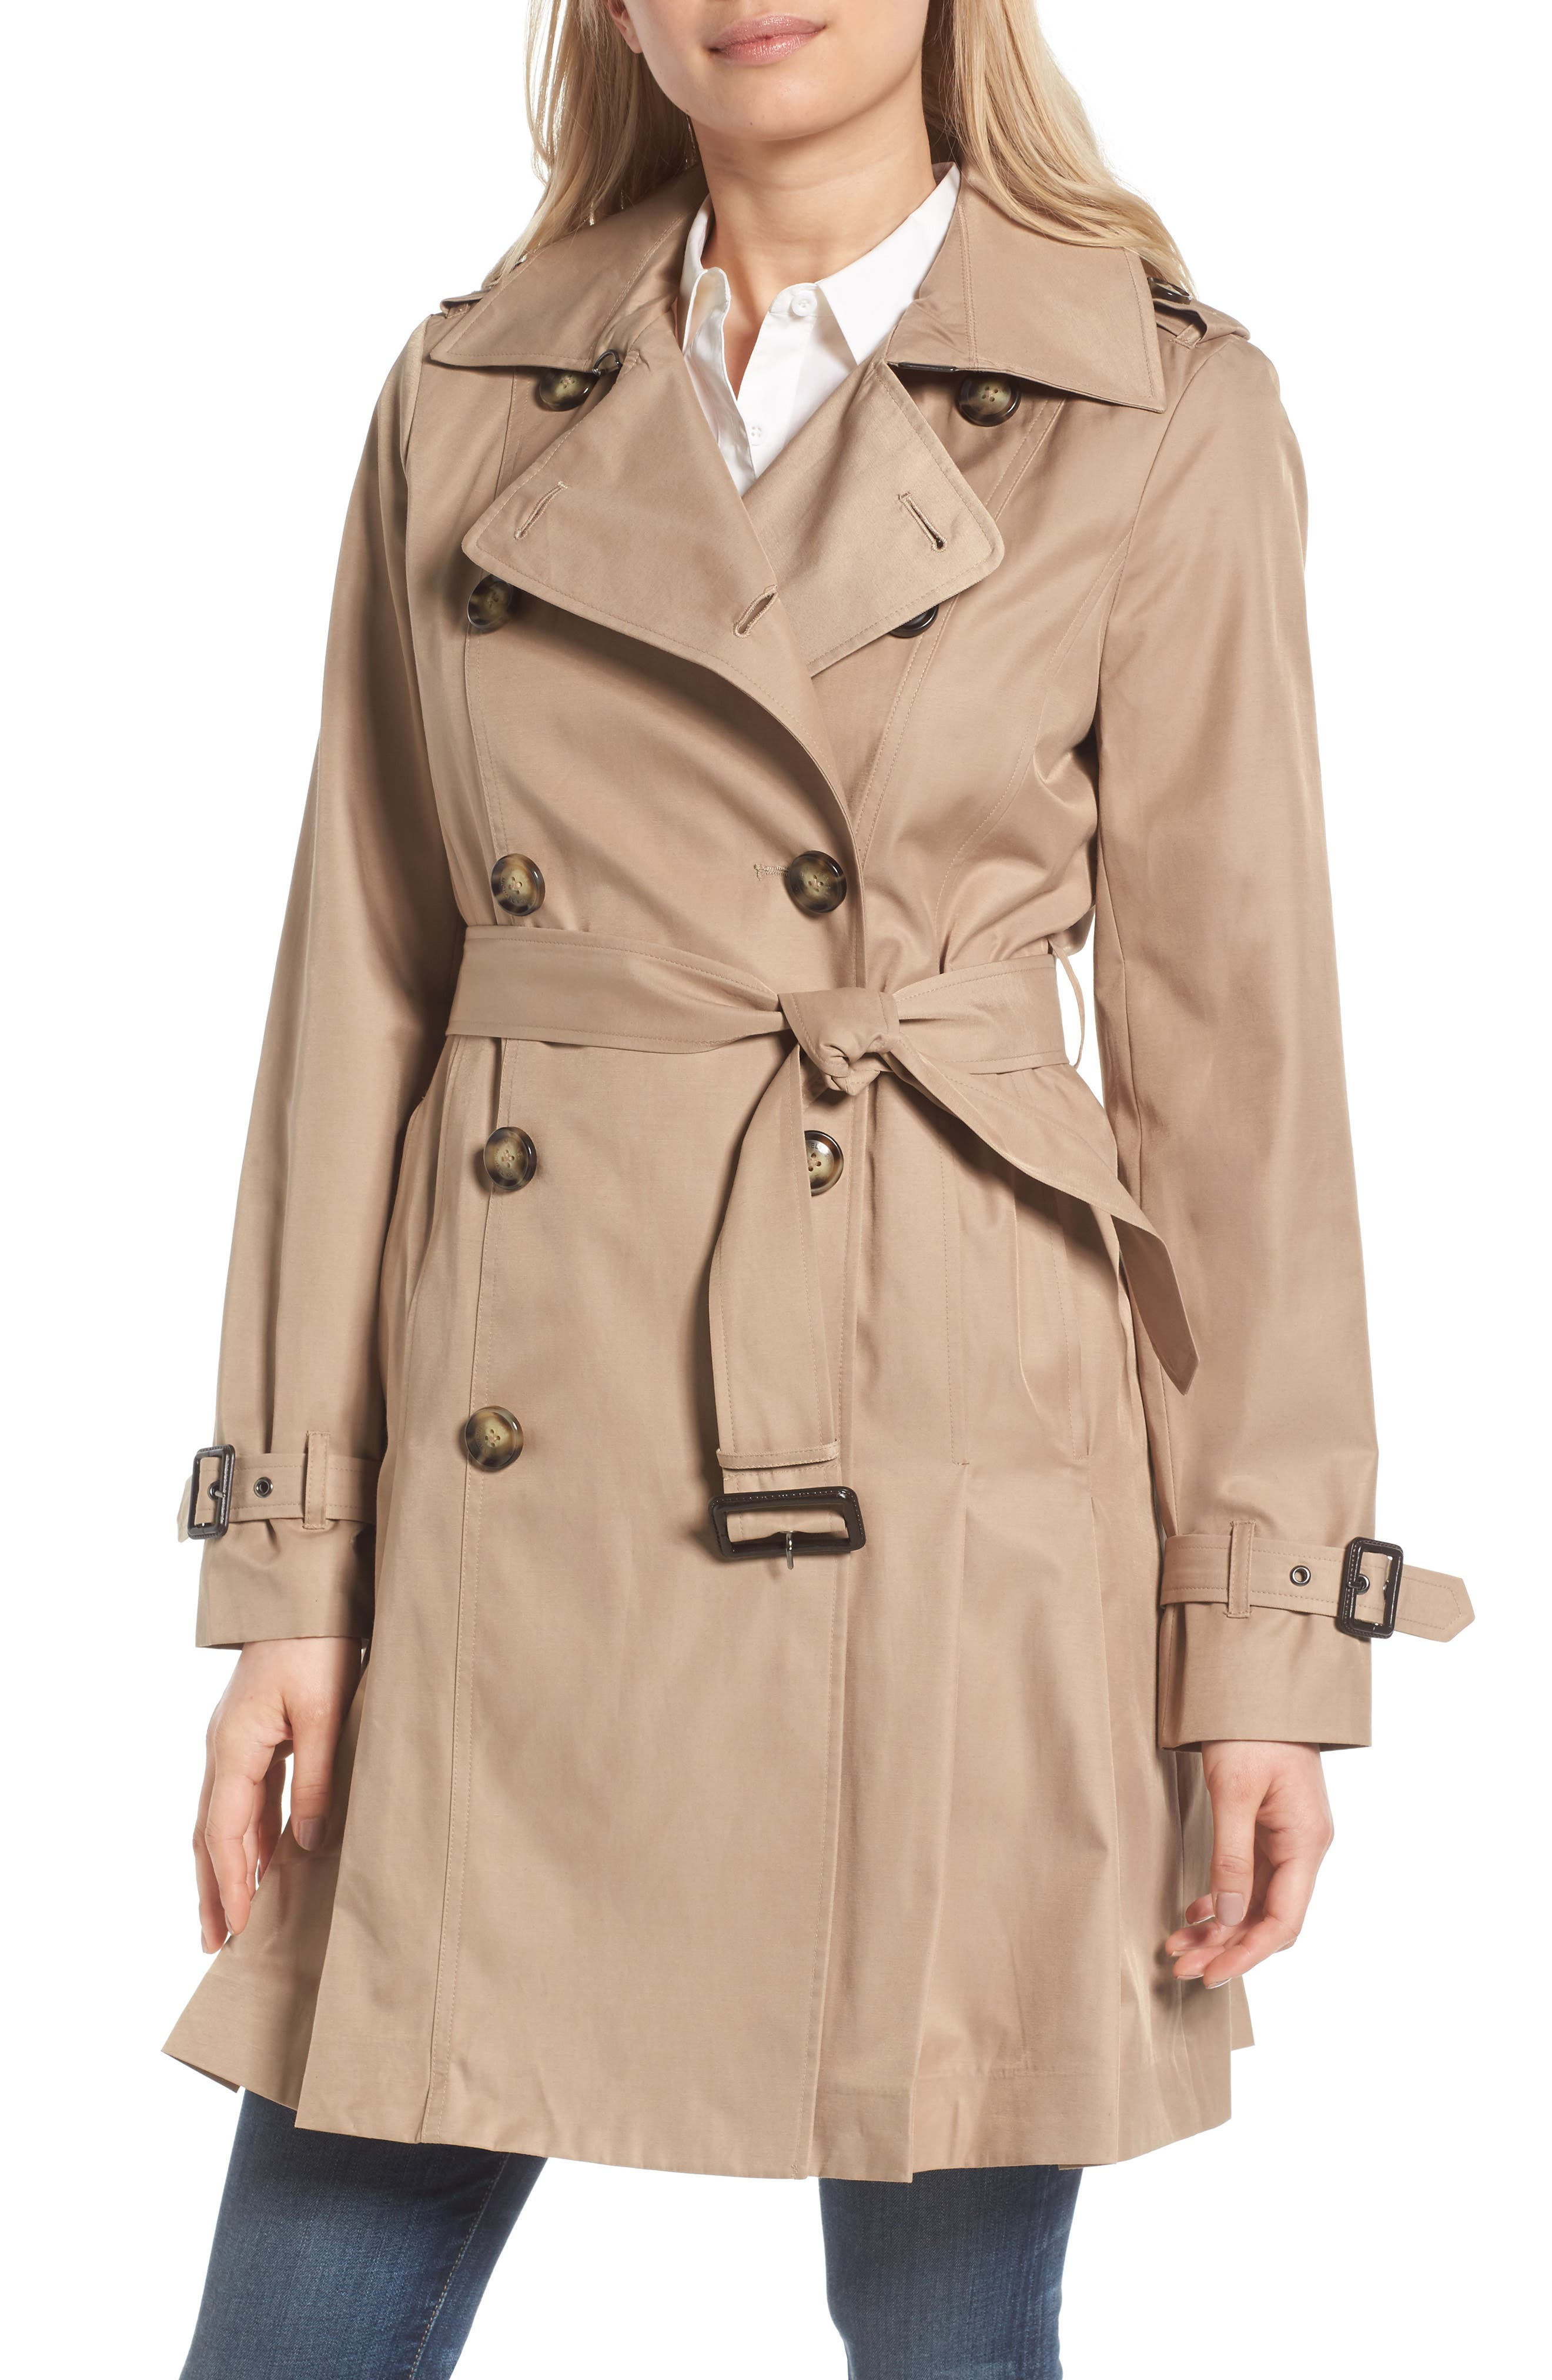 Alternate Image 1 Selected - MICHAEL Michael Kors Double Breasted Skirted Trench Coat